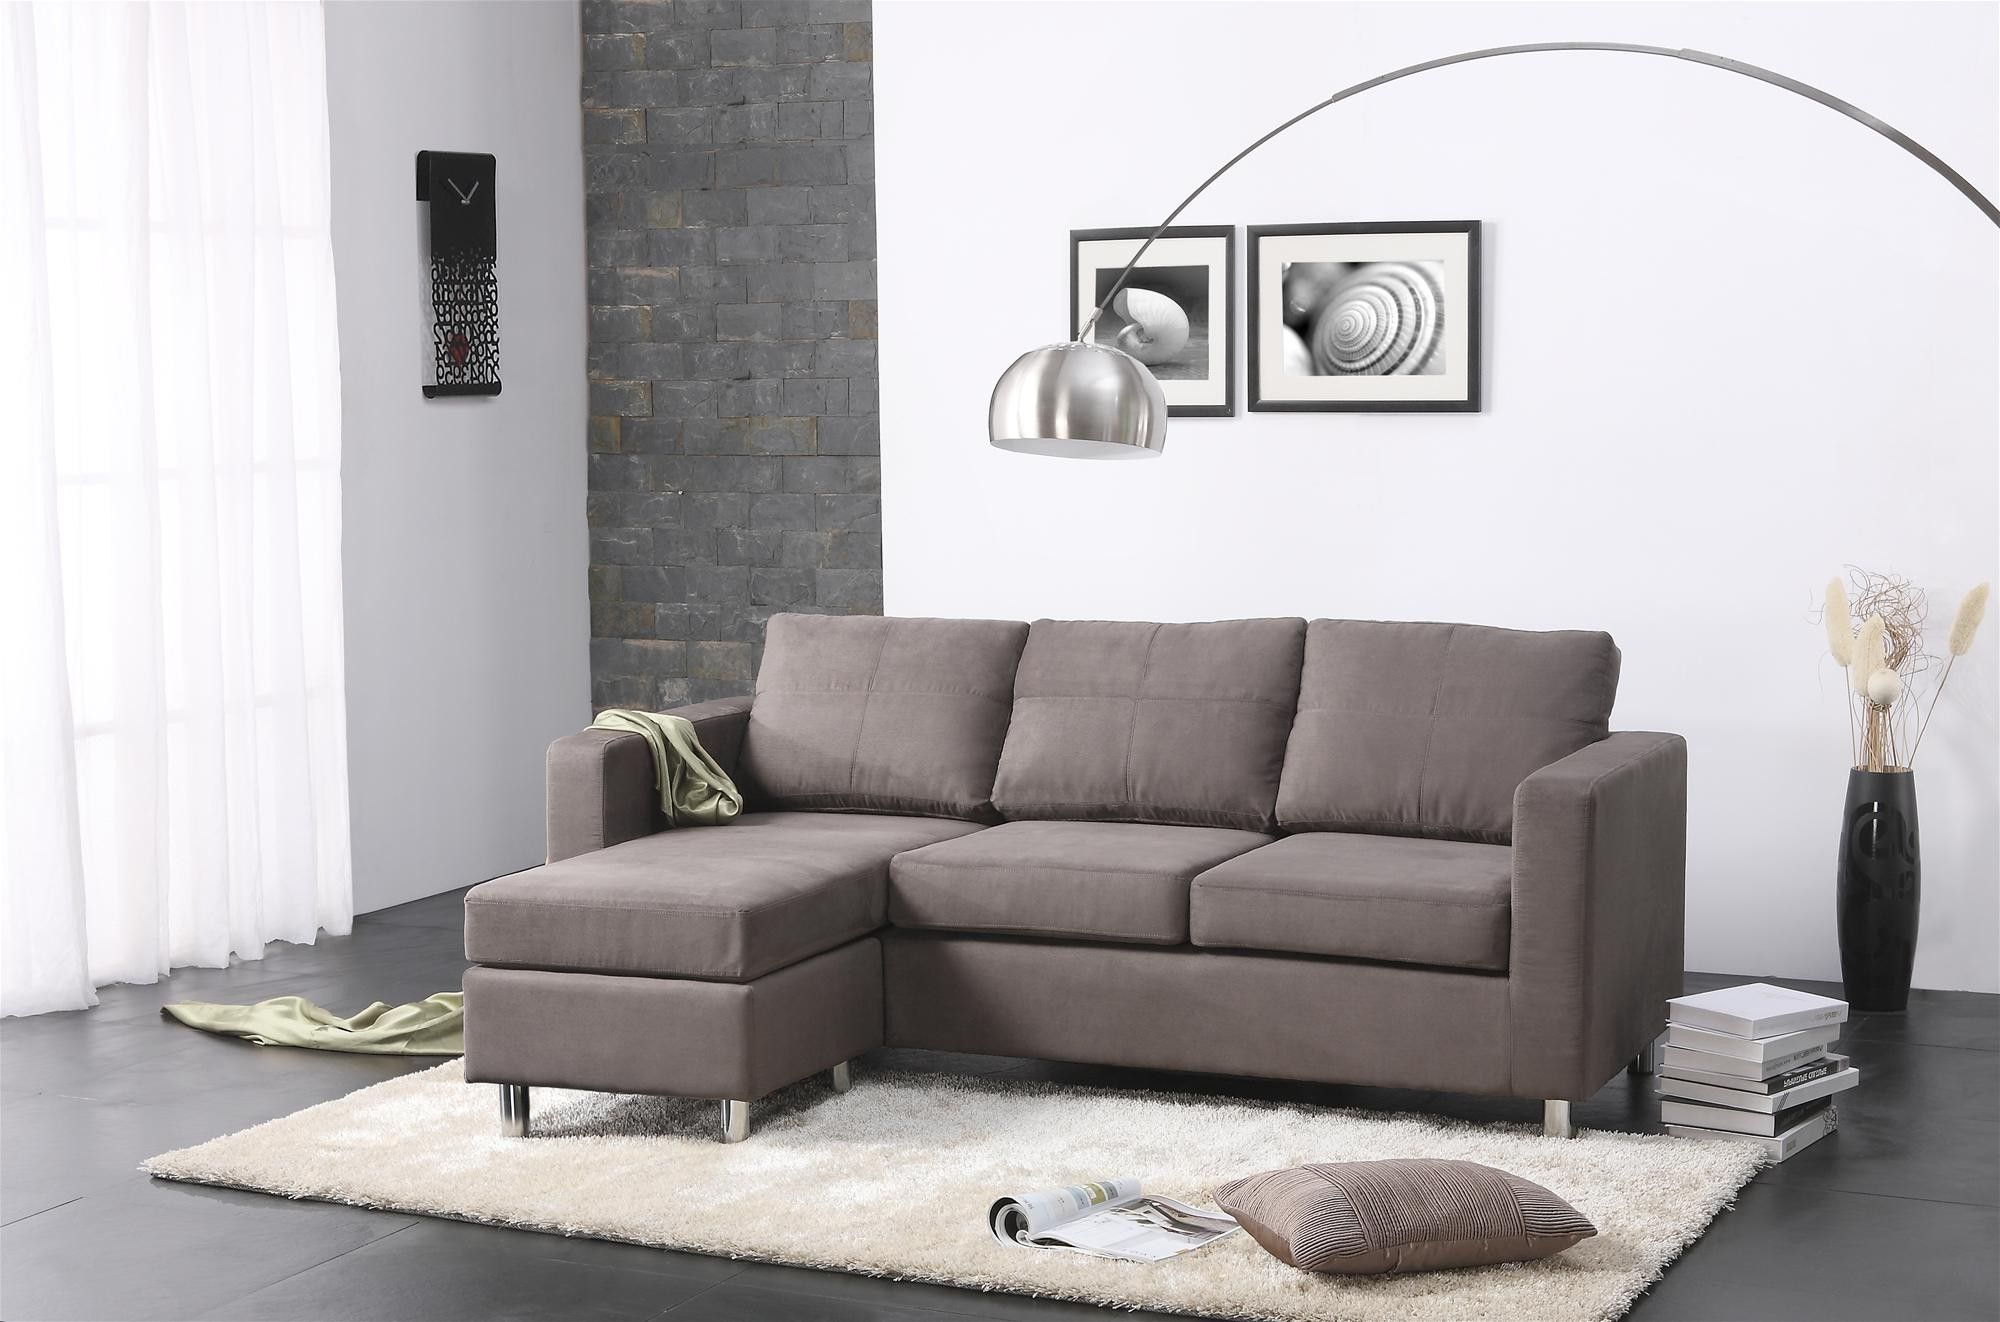 Couches For Small Living Rooms Pillow Rug Floor Wall Window Curtain Pictures Lamp Vases